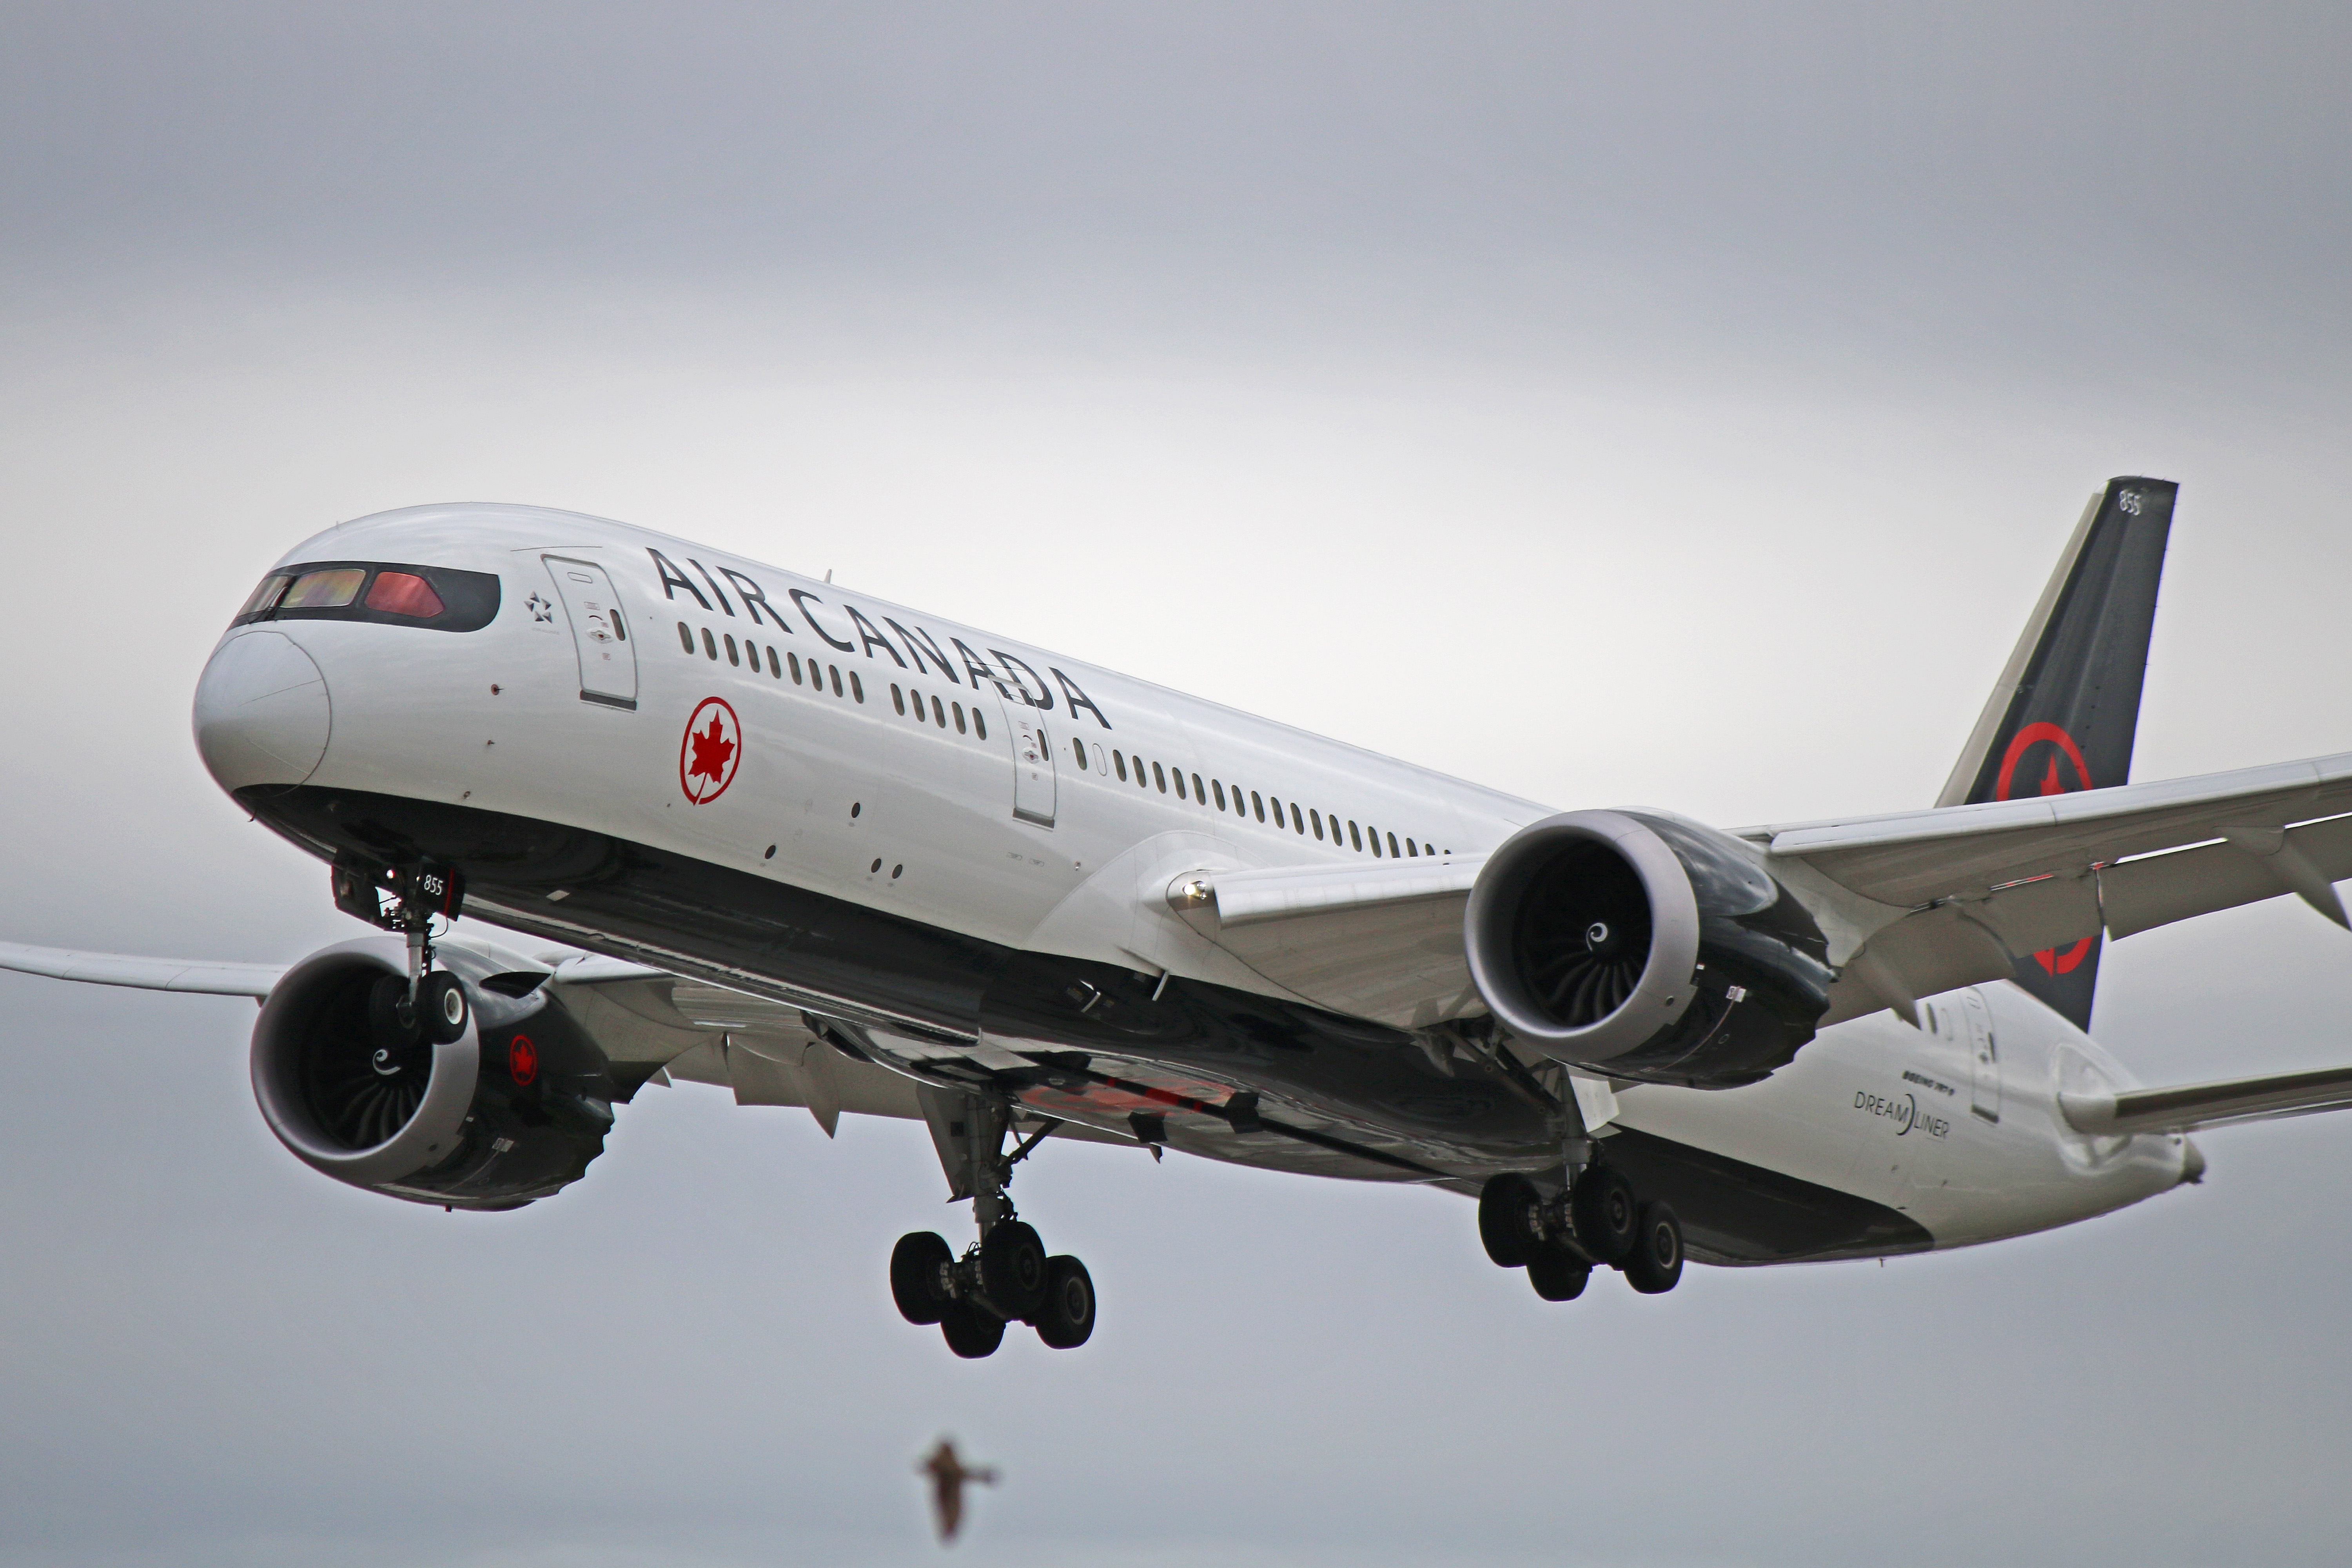 C-FVLX: Air Canada Boeing 787-9 Dreamliner (Don't Drop Your Cell)